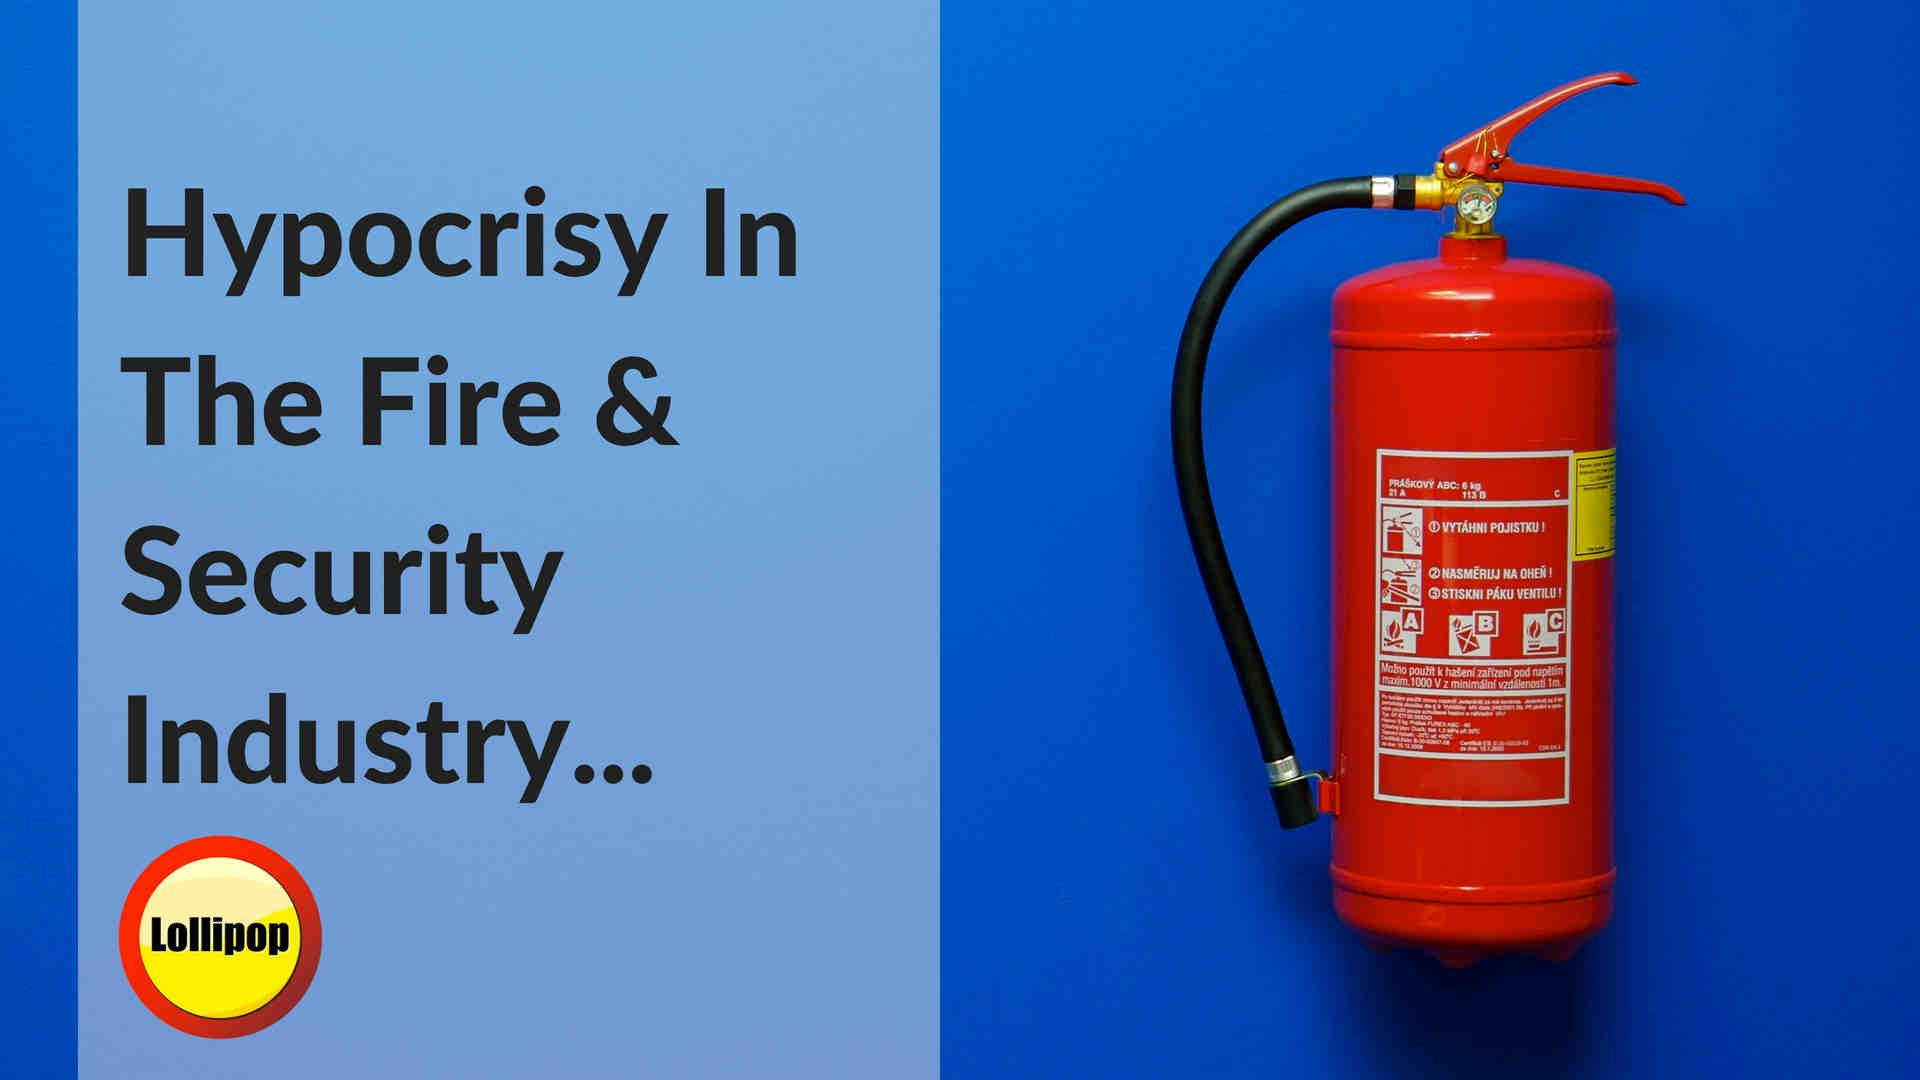 Hypocrisy in the Fire & Security Industry